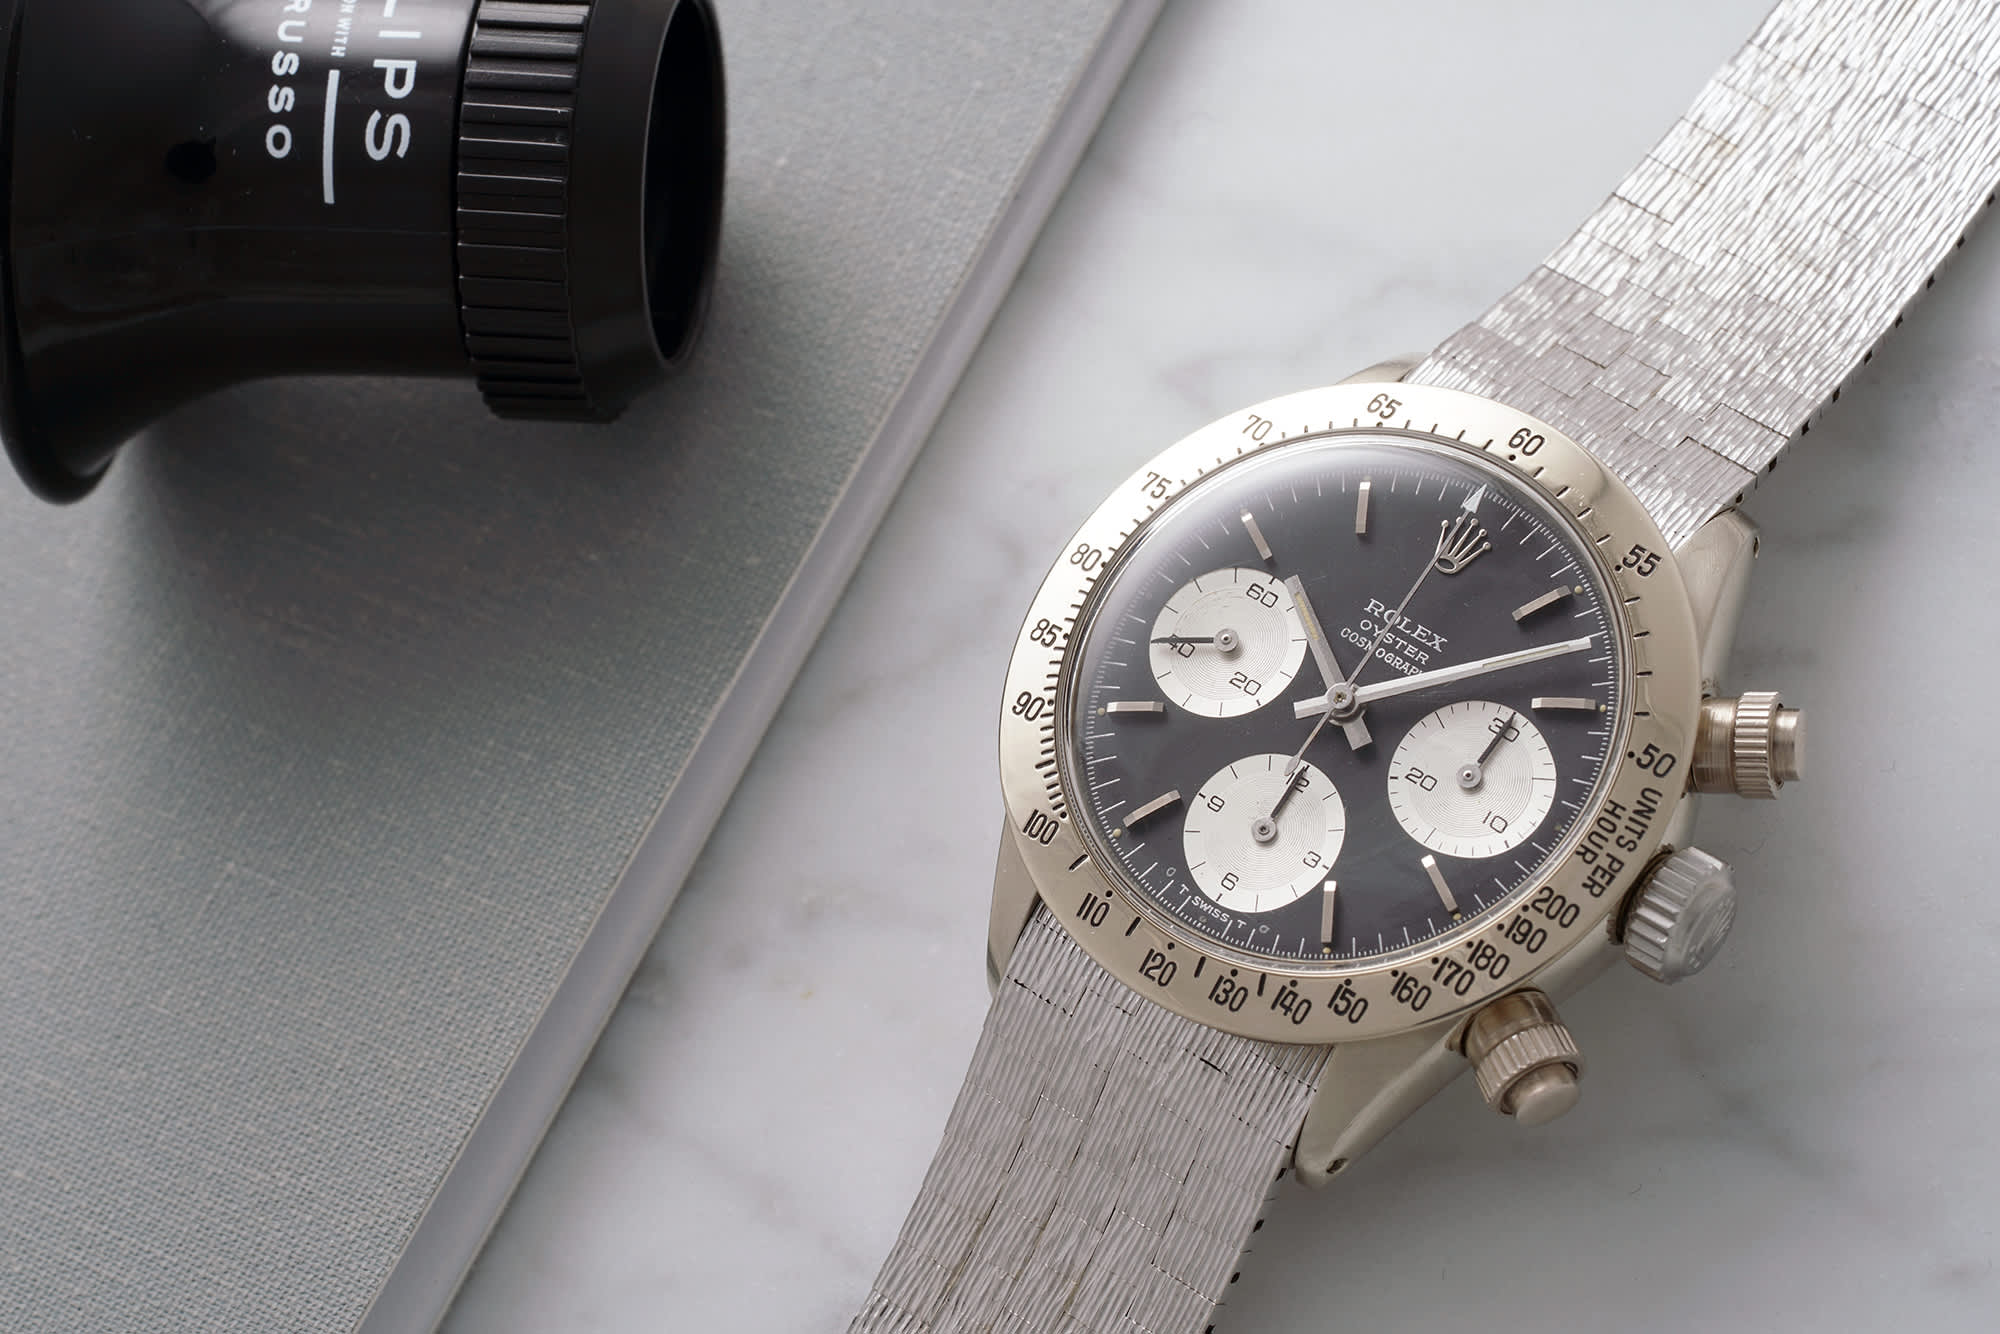 Meet The Unicorn One Of The Most Expensive Rolex Watches In The World